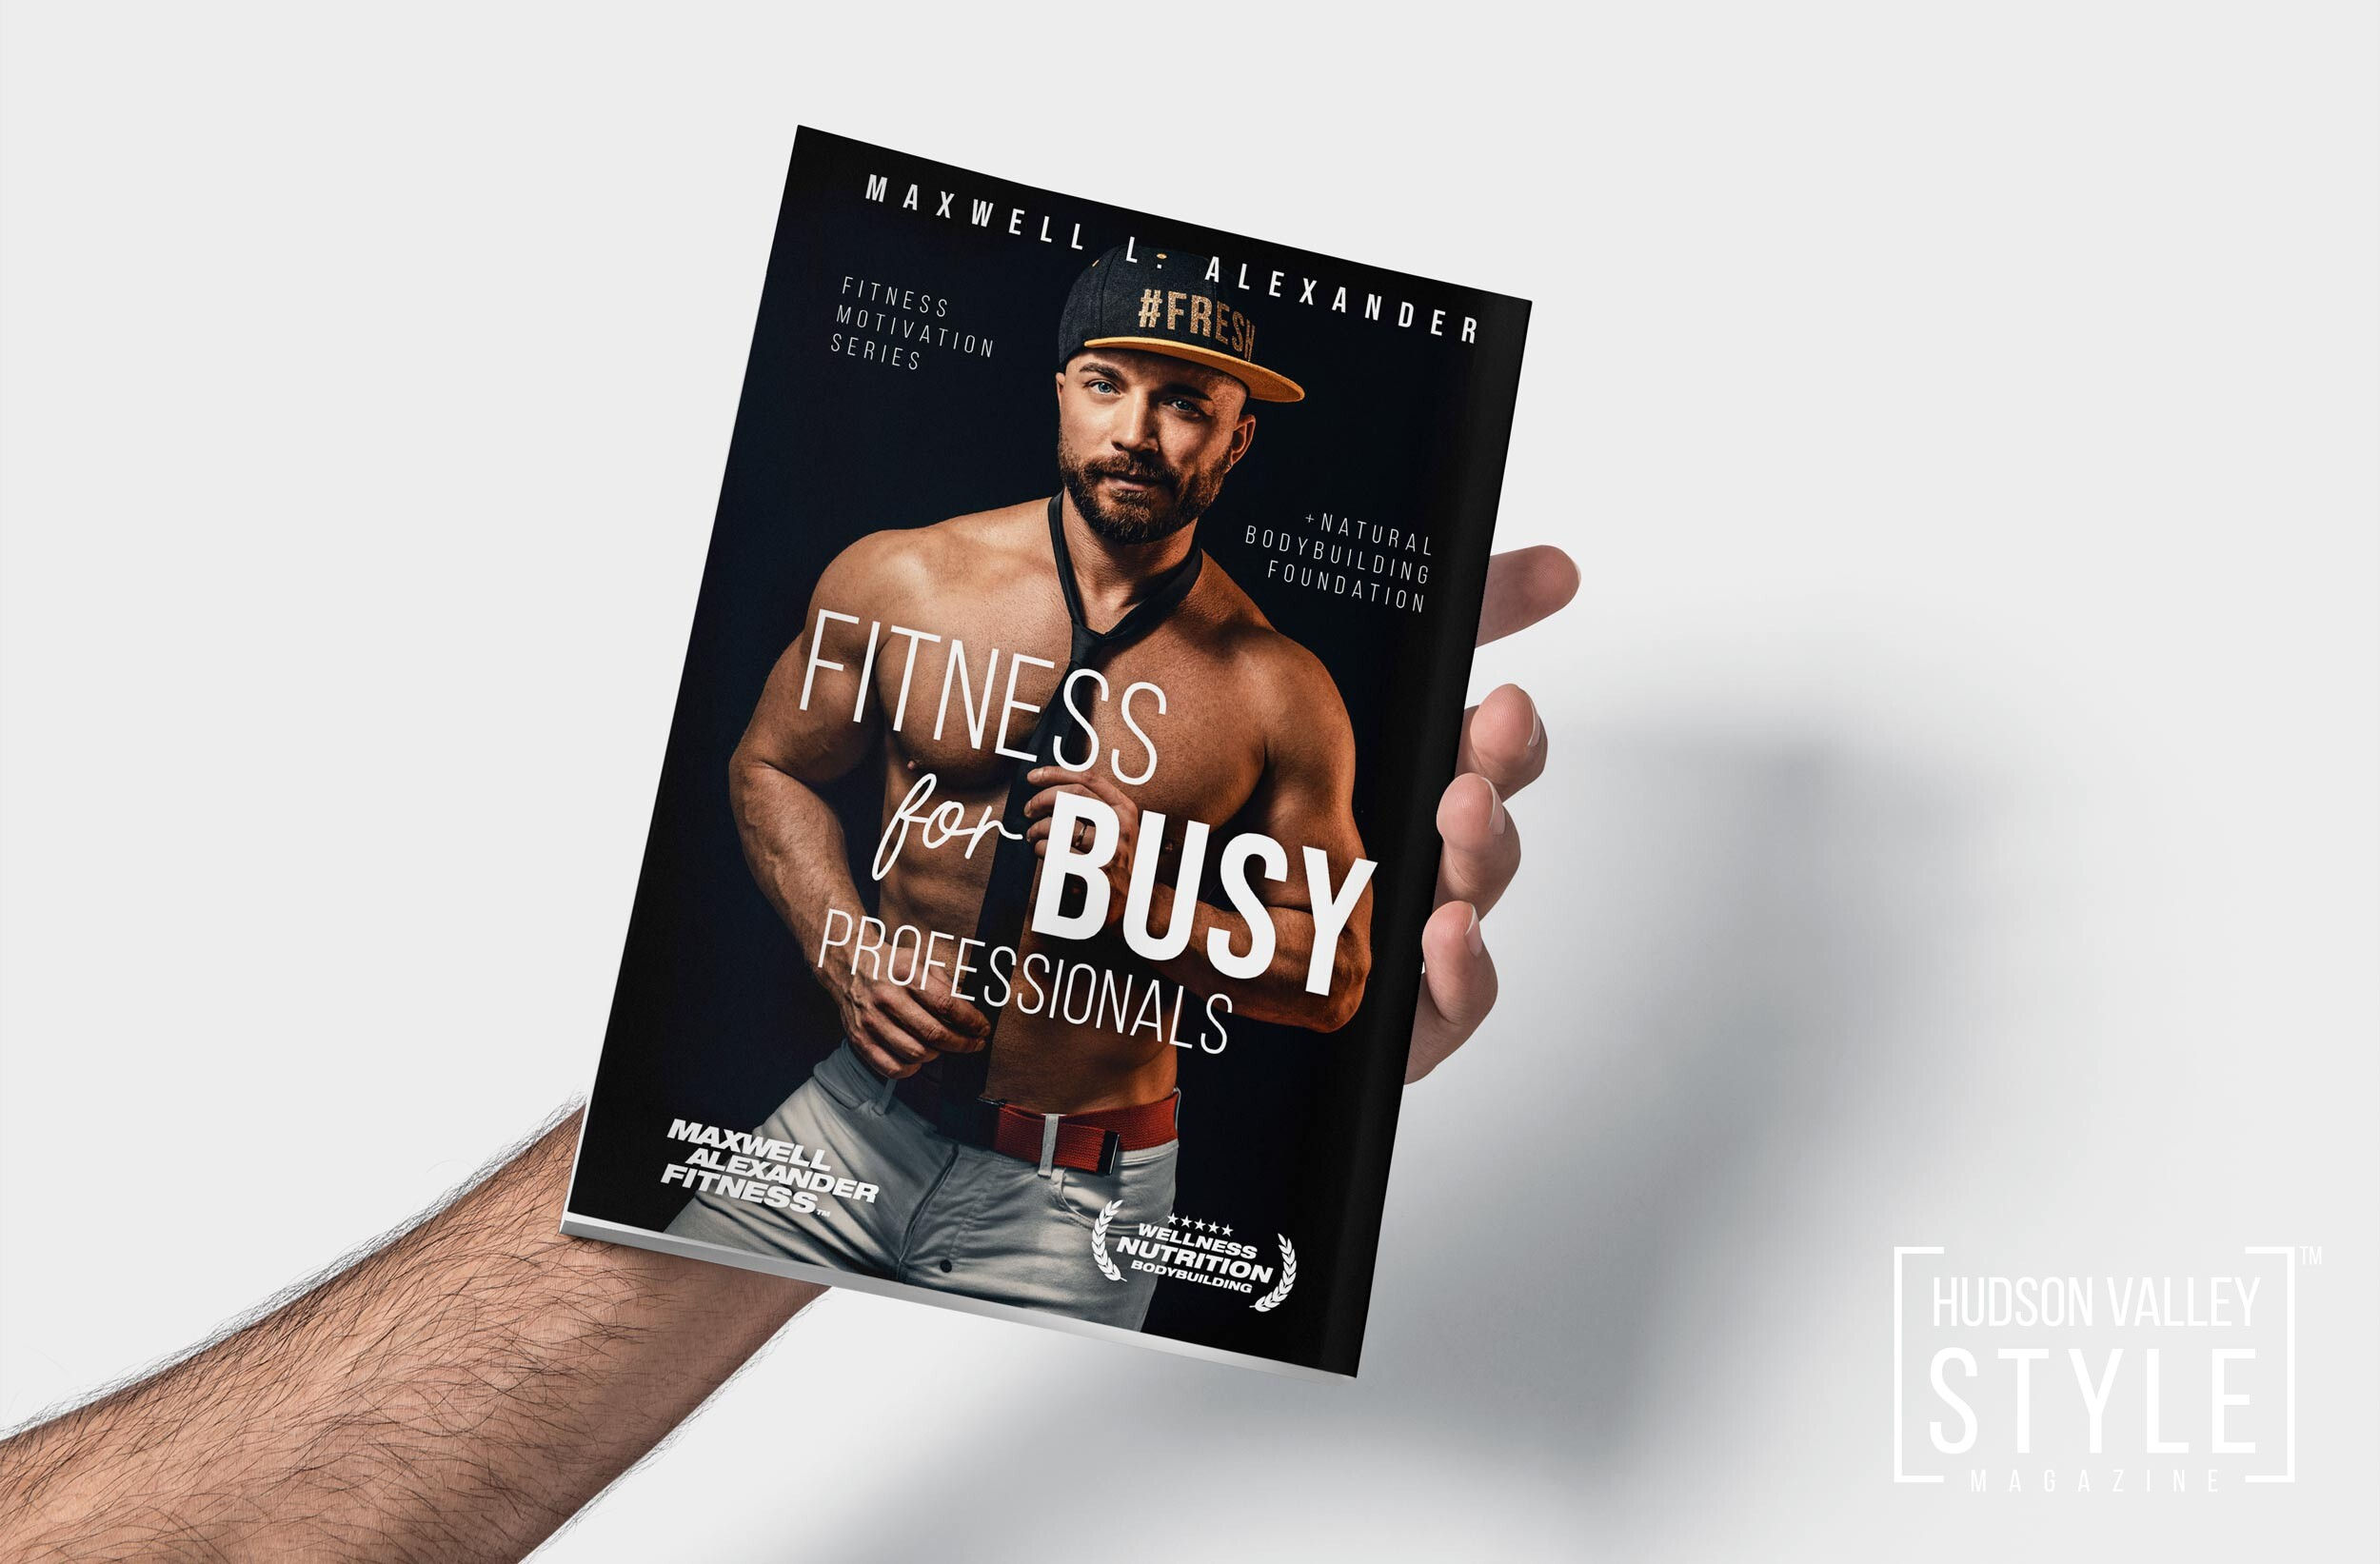 Fitness for Busy Professionals – New Fitness Motivation Book by Maxwell Alexander, MA, BFA, BS, ISSA Certified Fitness Trainer, Certified Bodybuilding Specialist, Certified Sports Nutrition Specialist